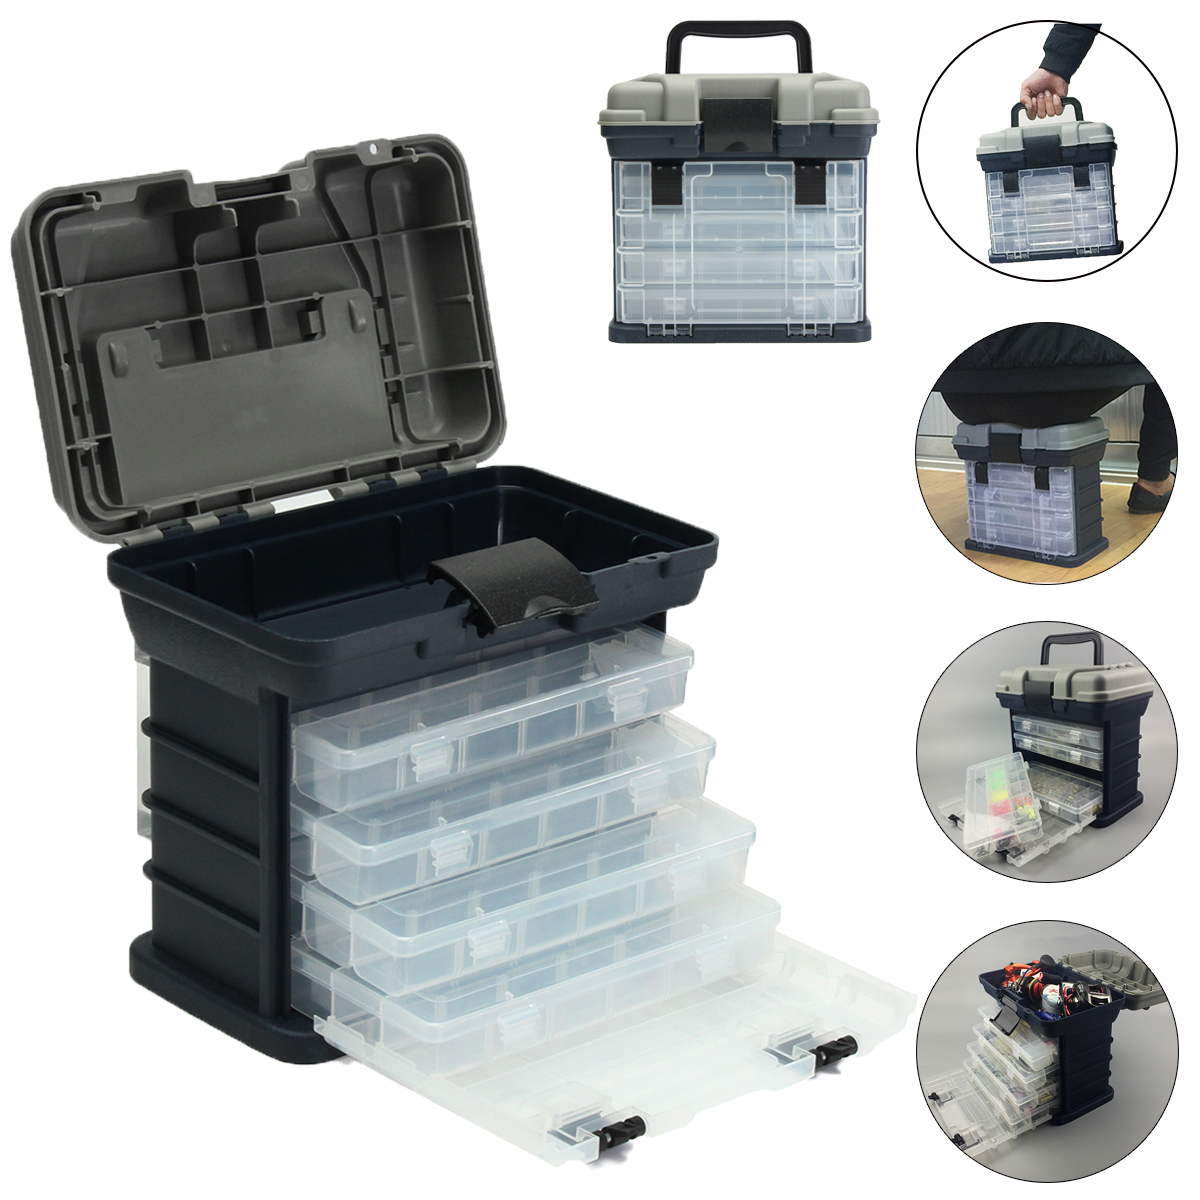 ZANLURE 4- layer Fishing Tackle Box Lures Storage Tray